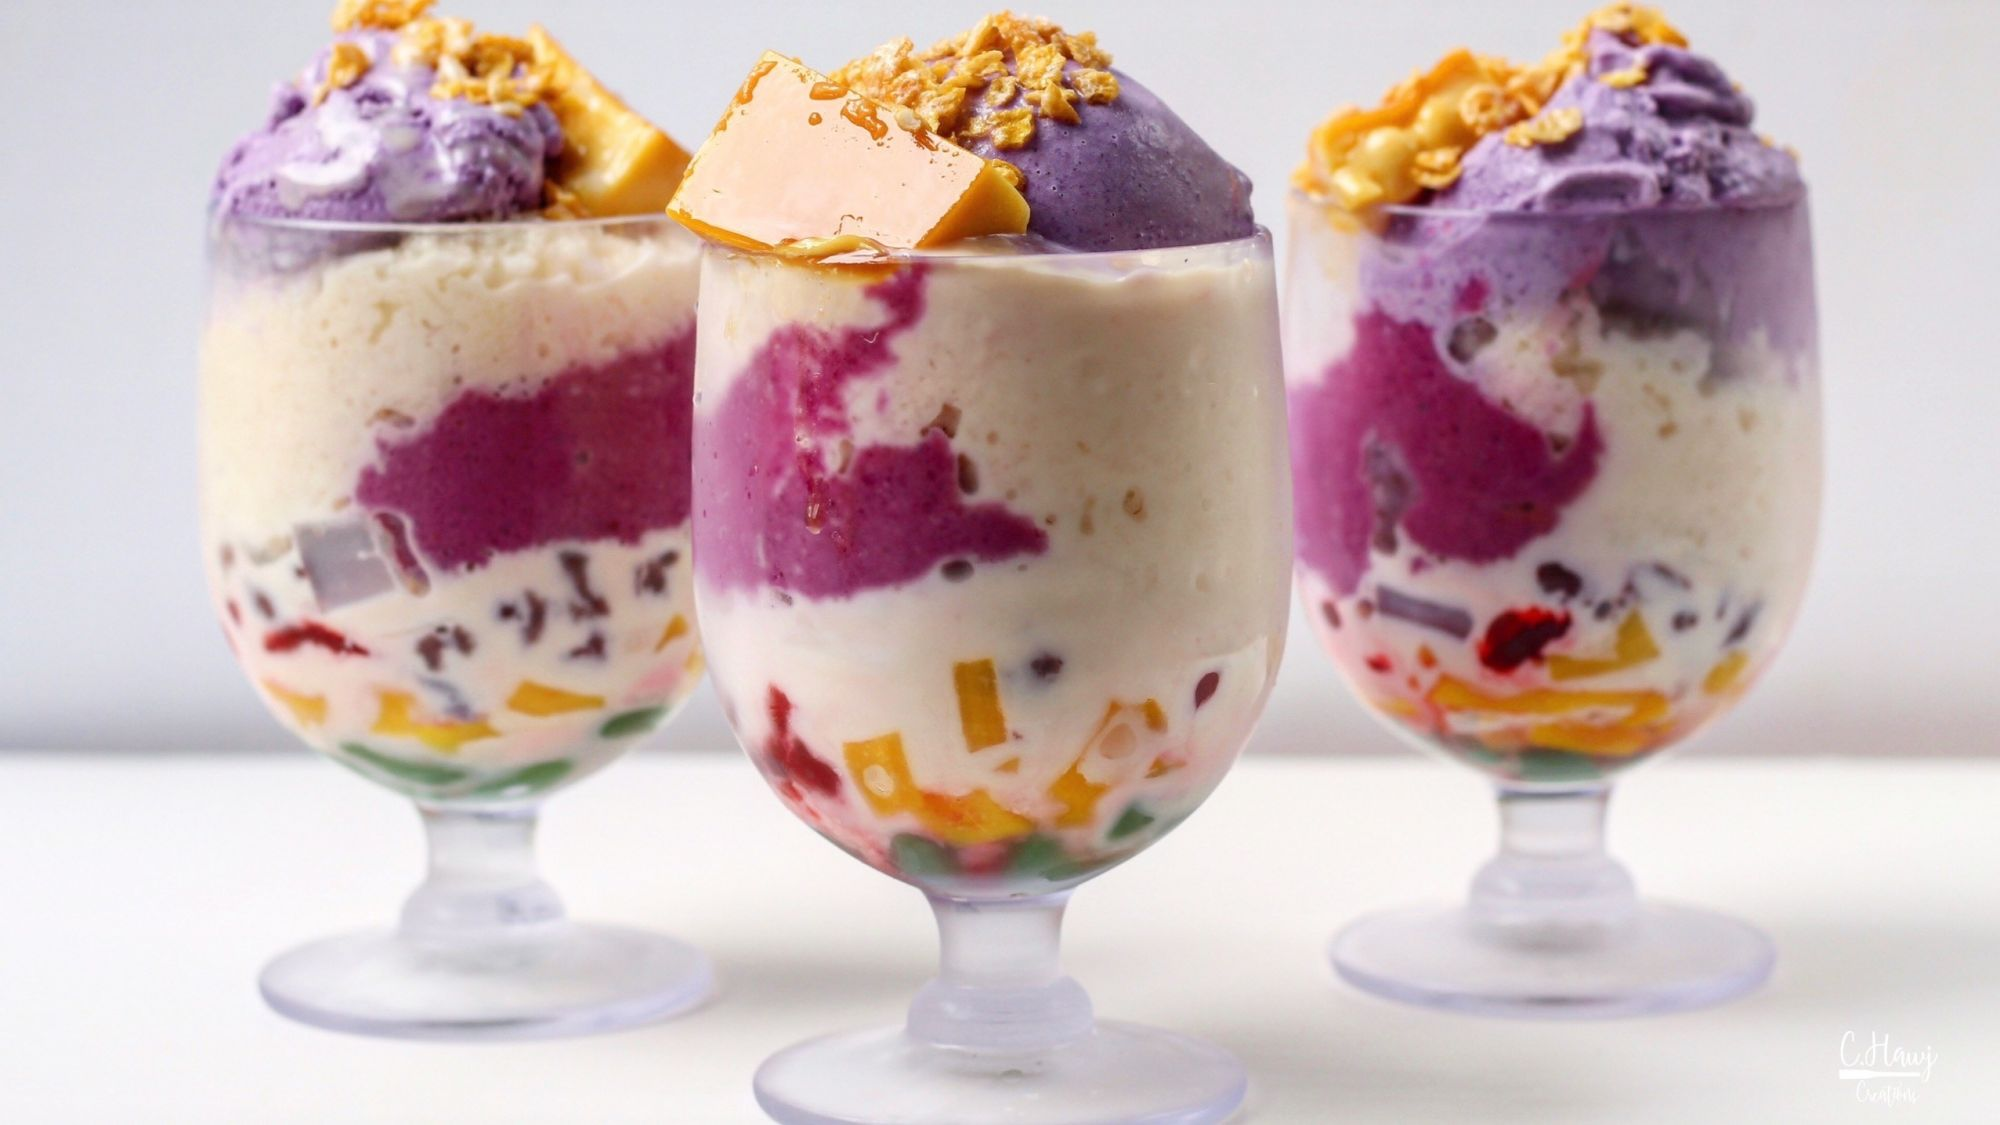 The Philippines' Halo-halo | Photo: Chawjcreations